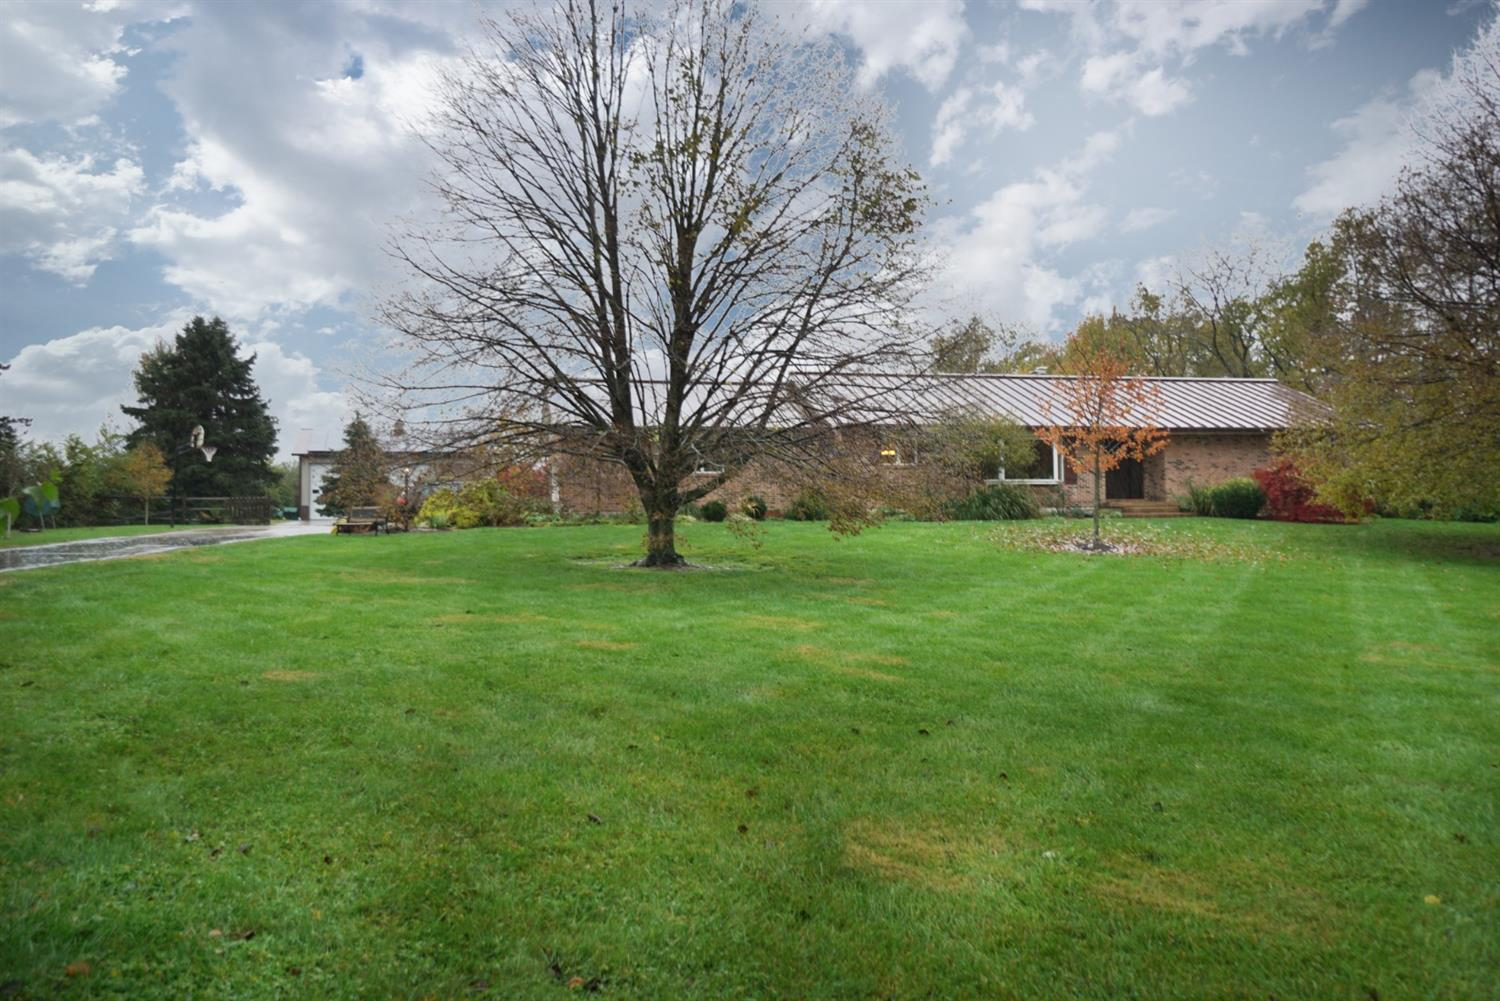 6024 W Weidner Rd Clear Creek Twp., OH